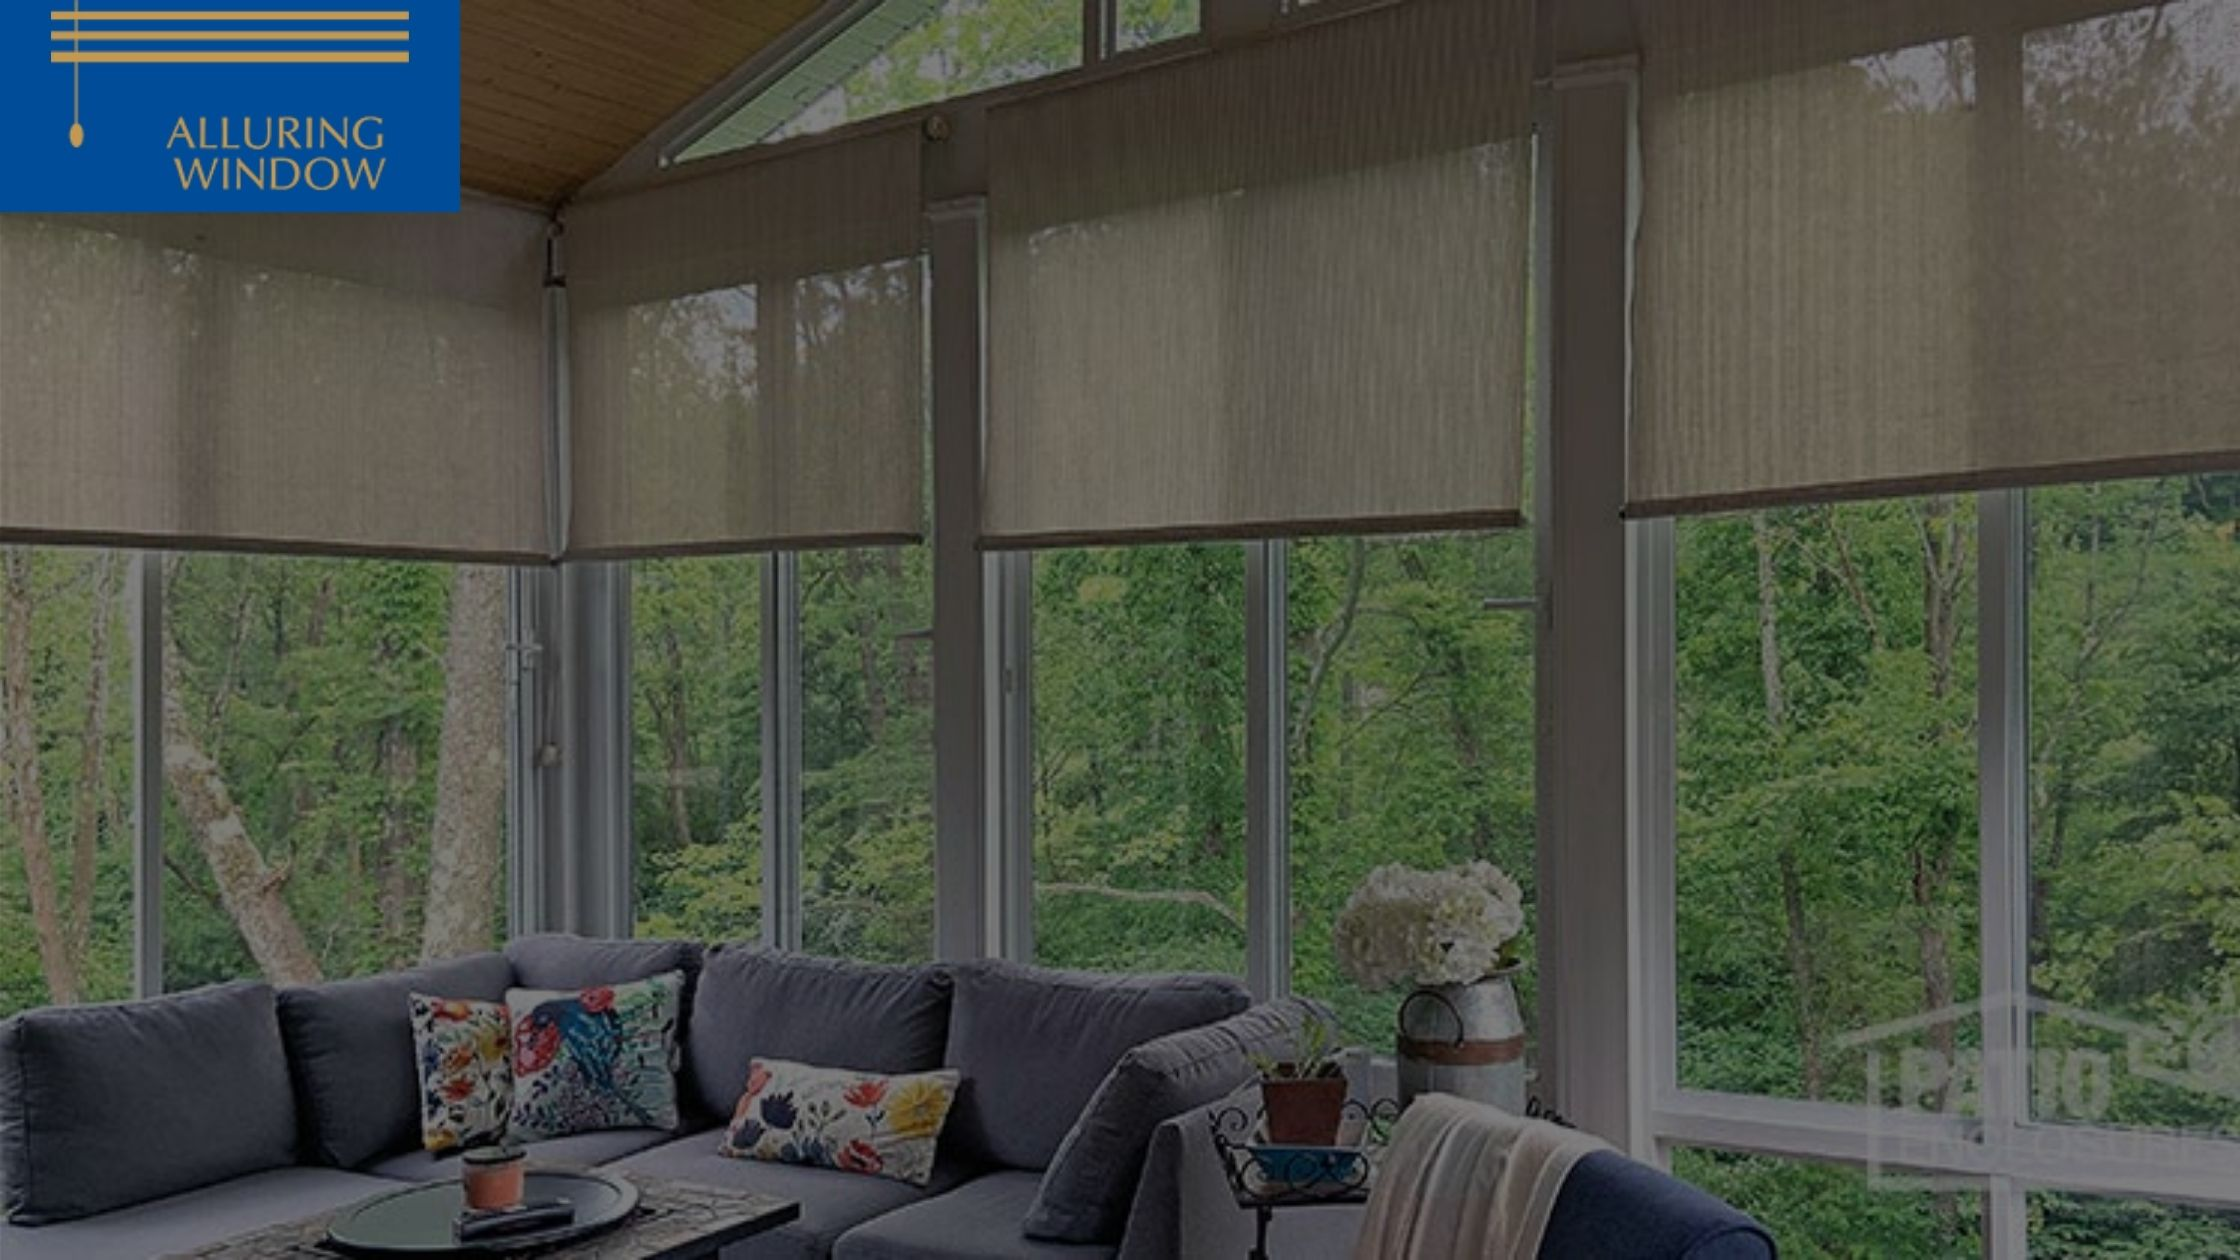 Motorized Window Blinds for Your Sun Room